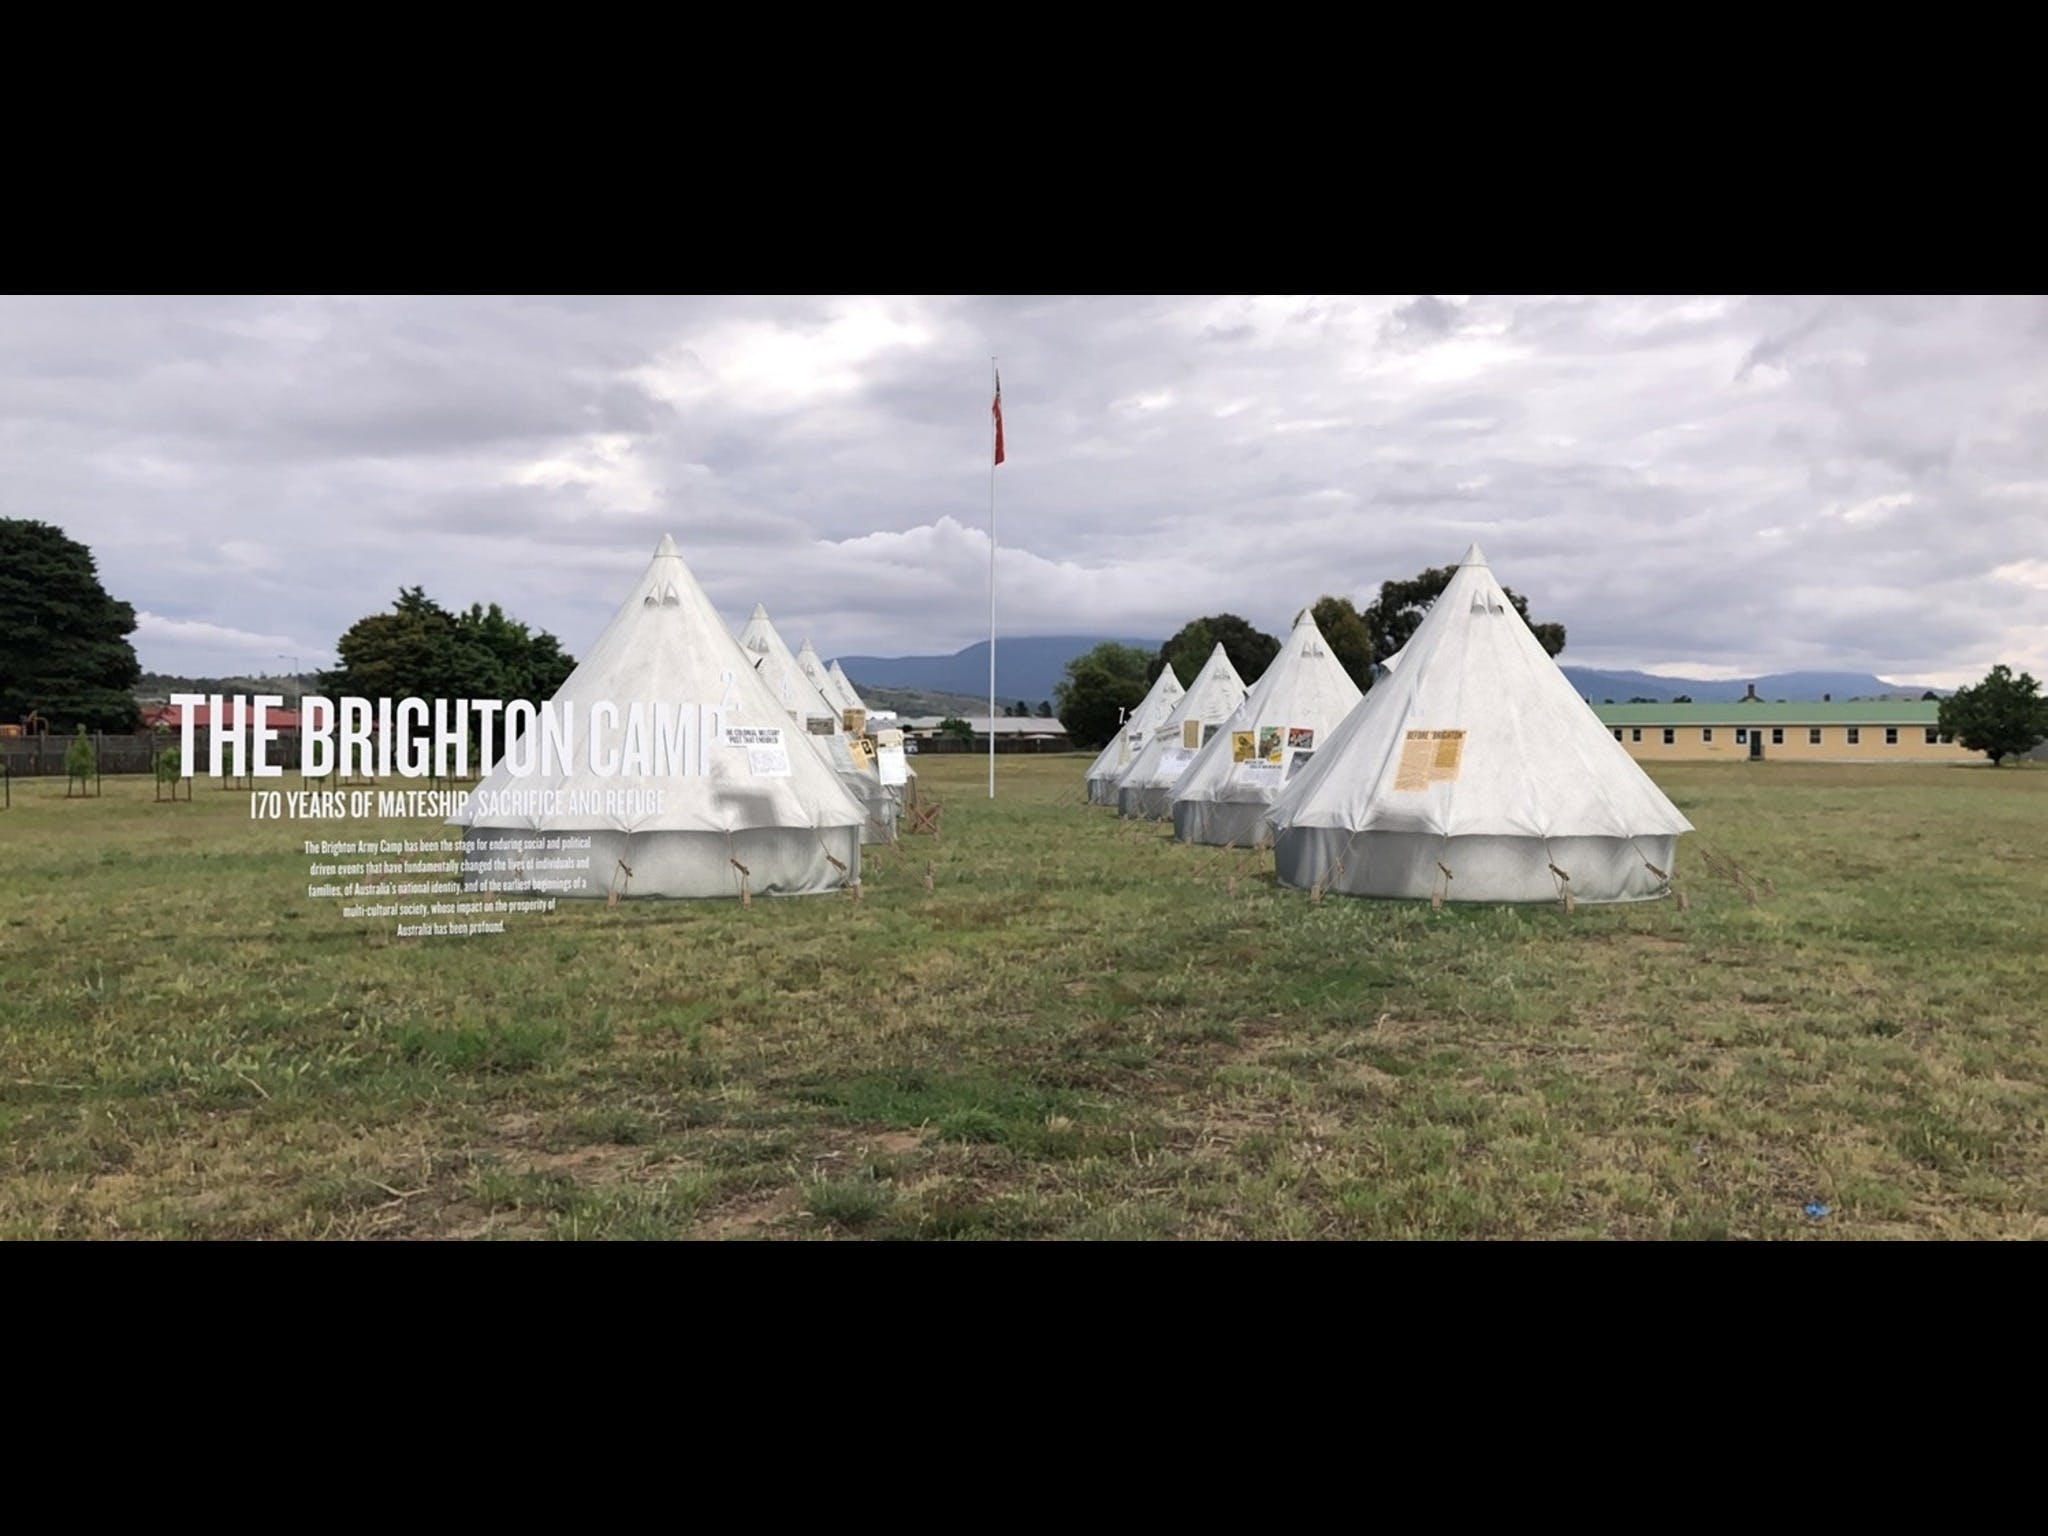 Brighton Army Camp - tourismnoosa.com